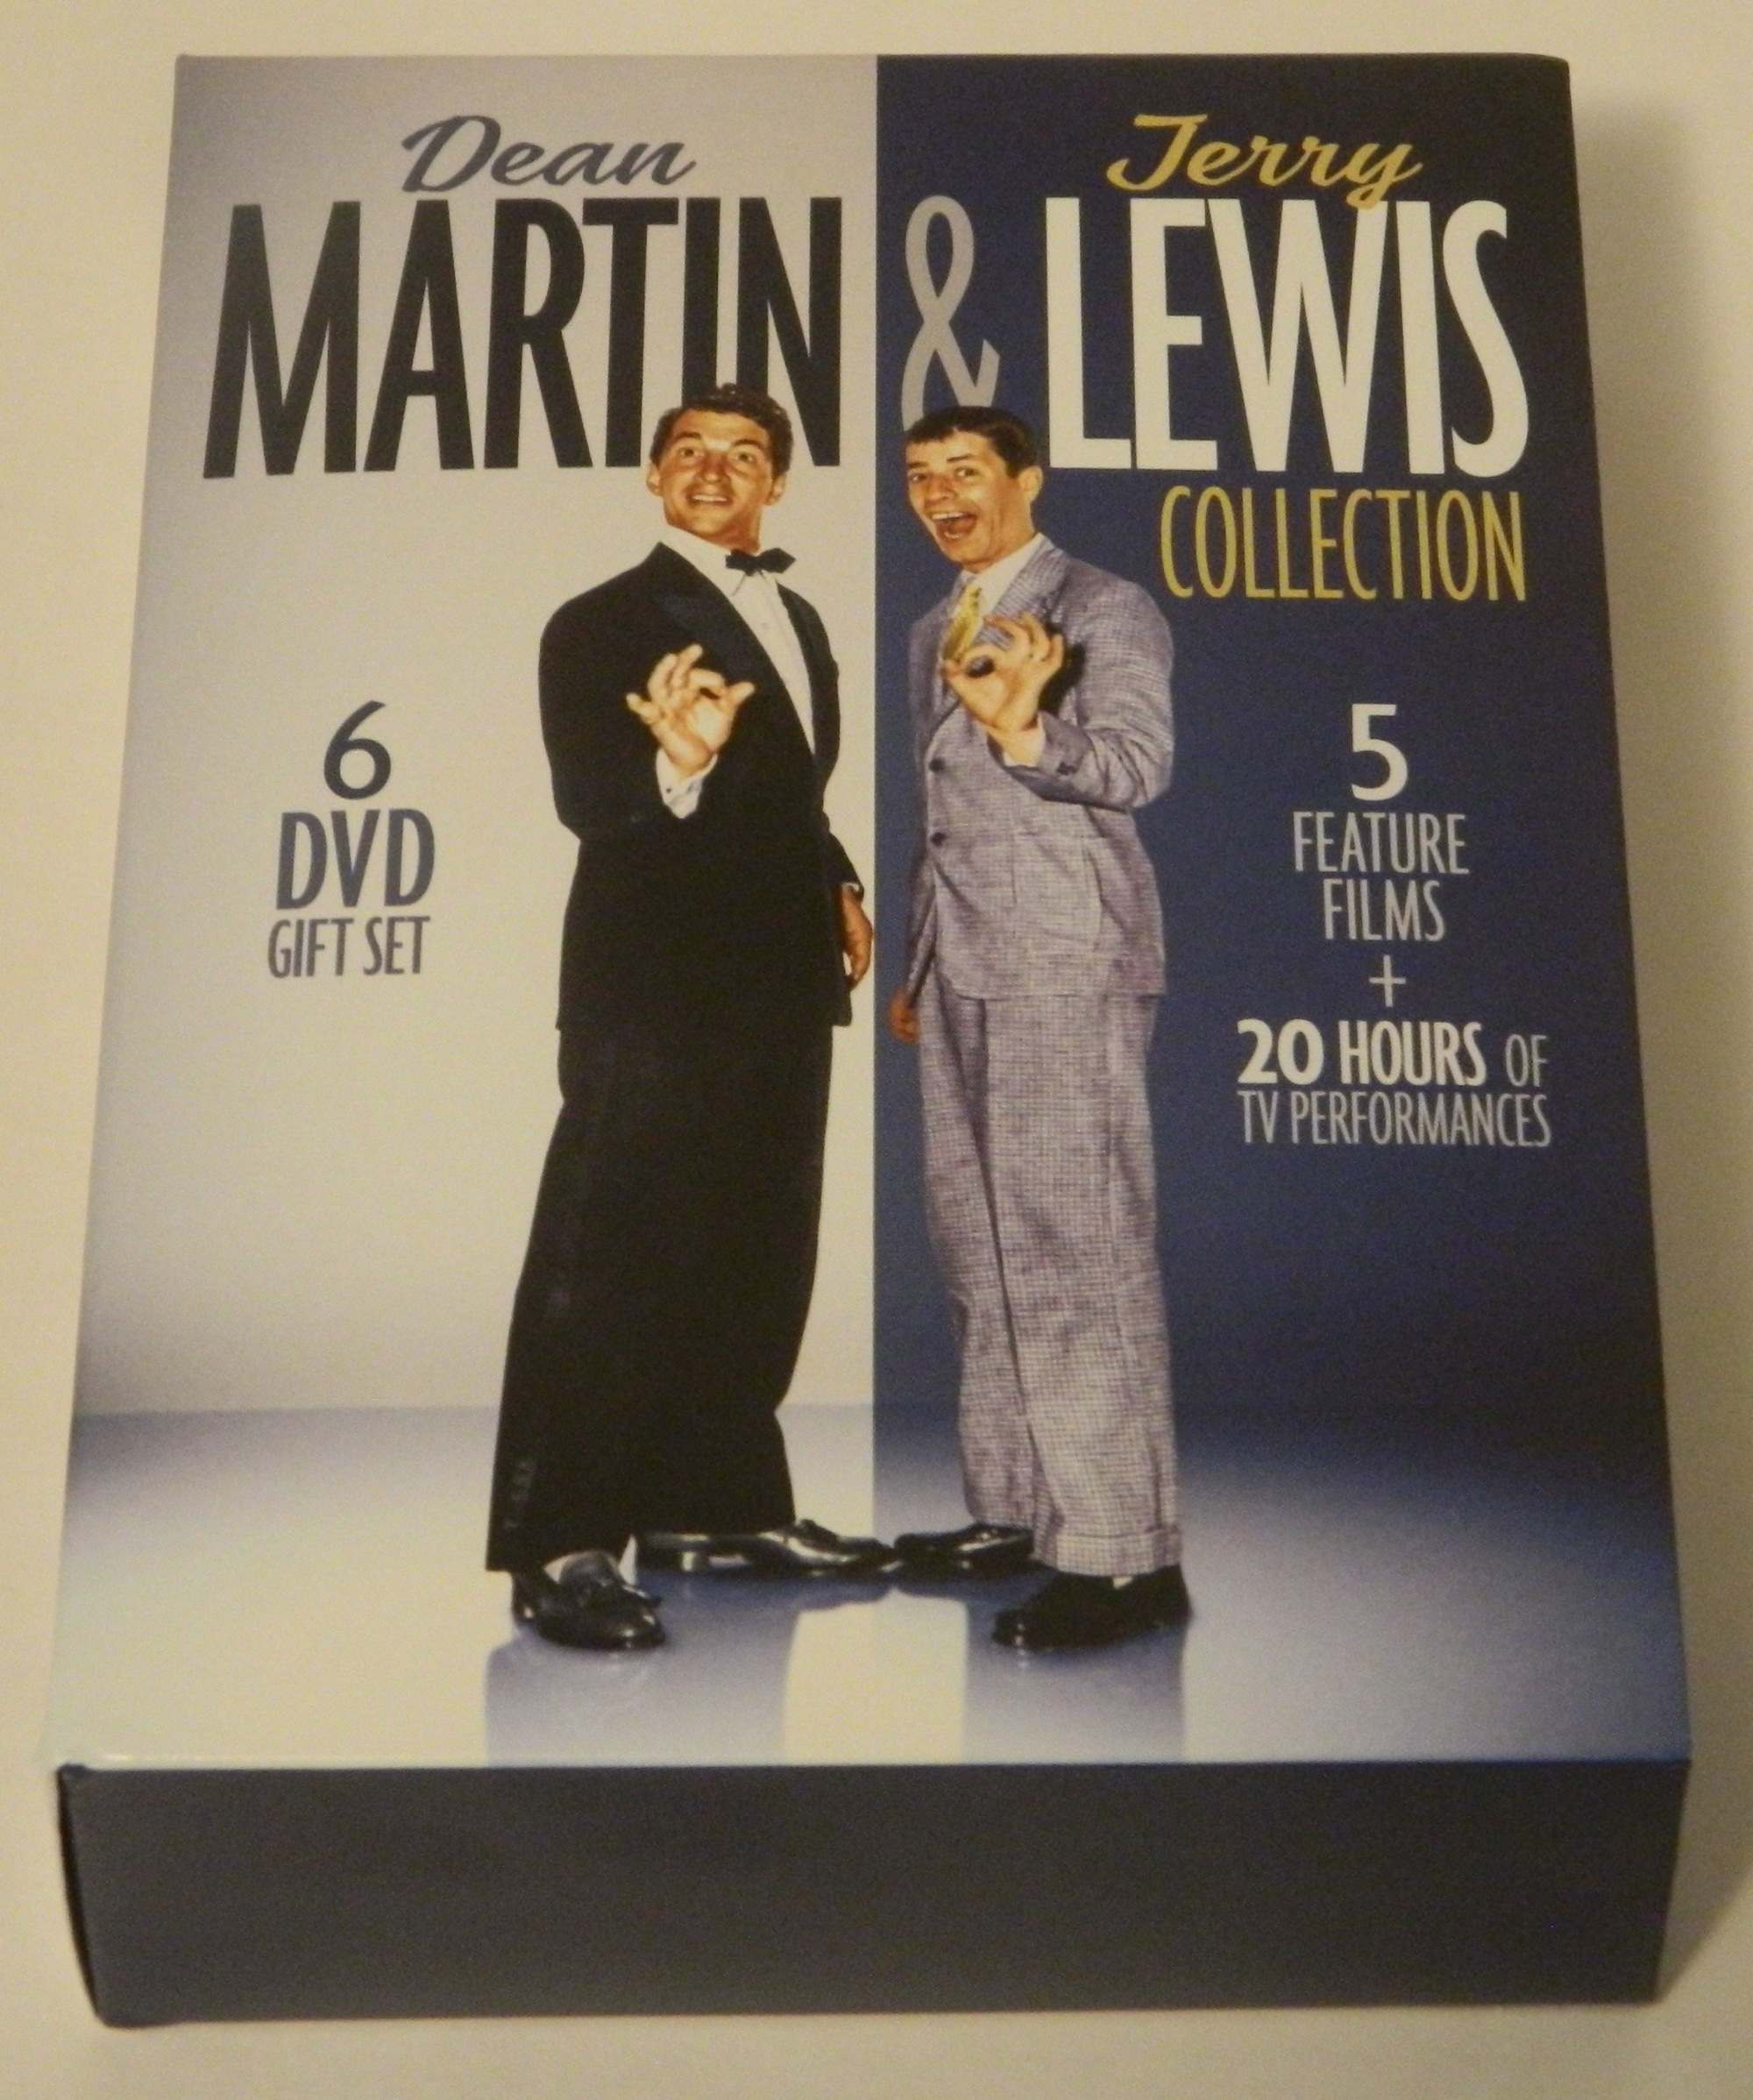 Dean Martin and Jerry Lewis Collection DVD